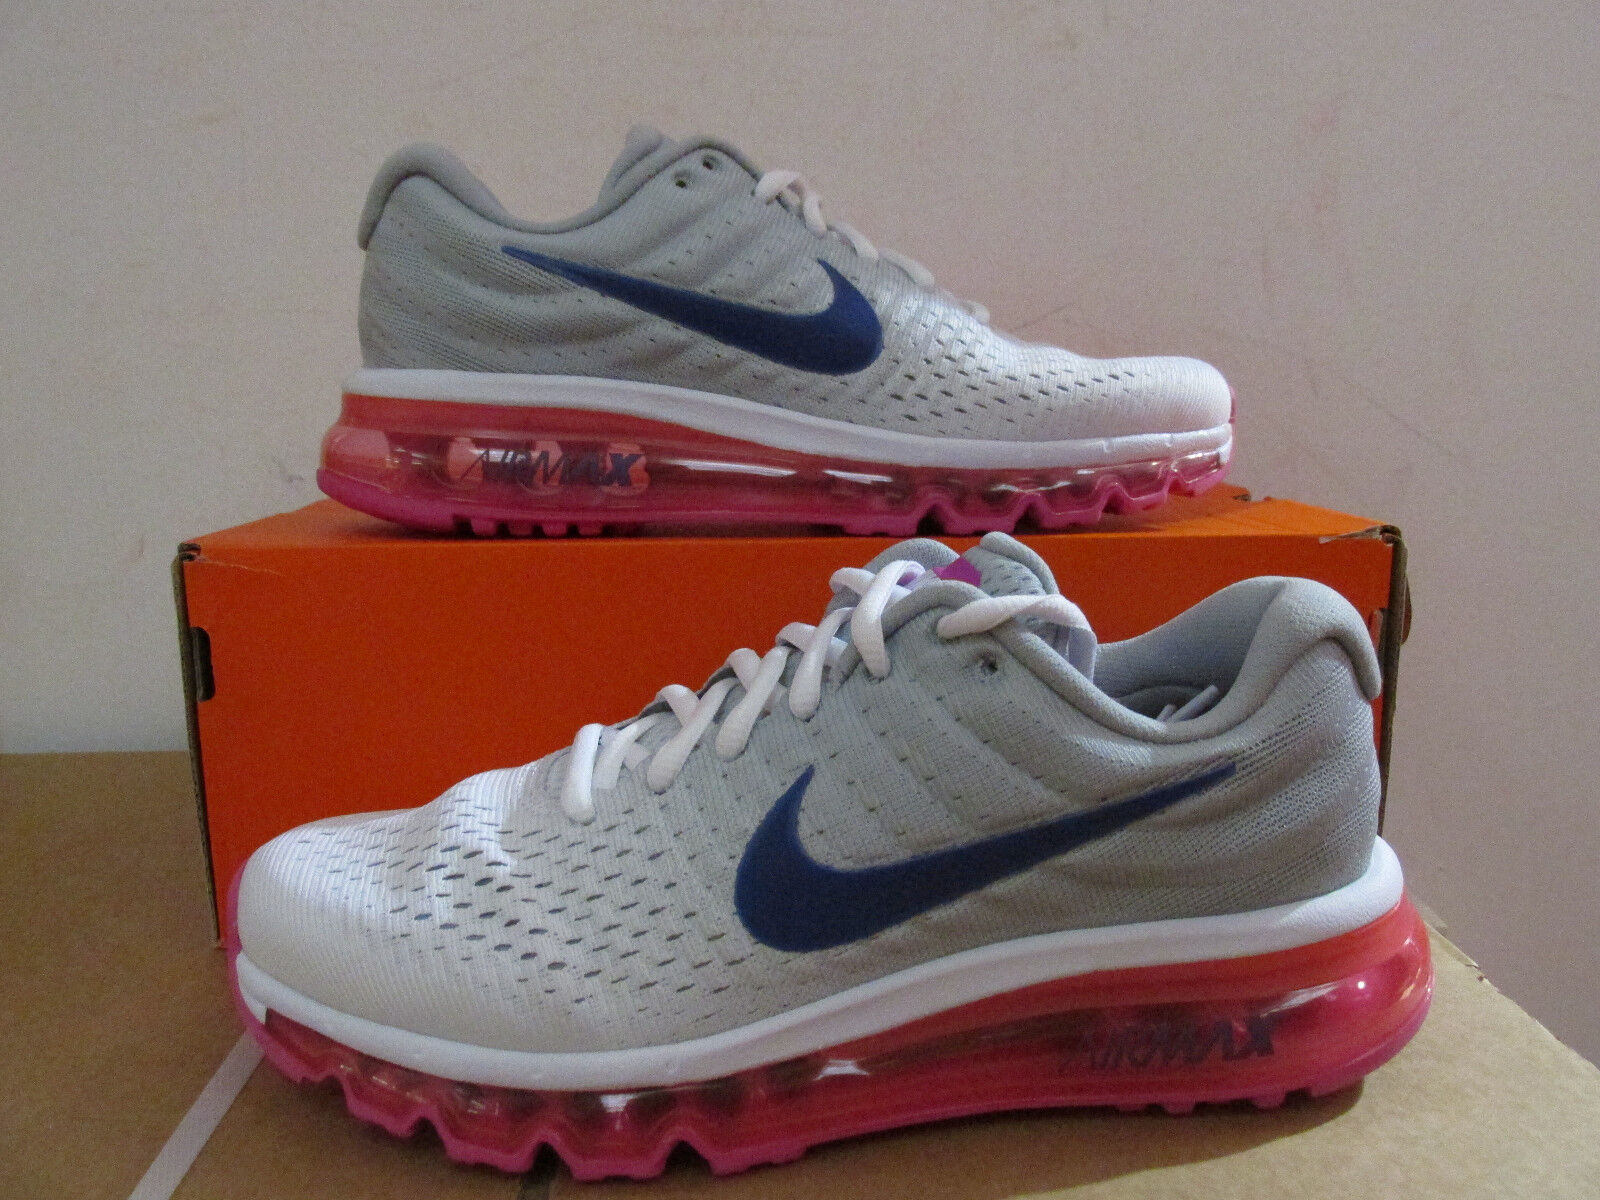 Nike Womens Air Max 2018 Running Trainers 849560 Sneakers Shoes CLEARANCE